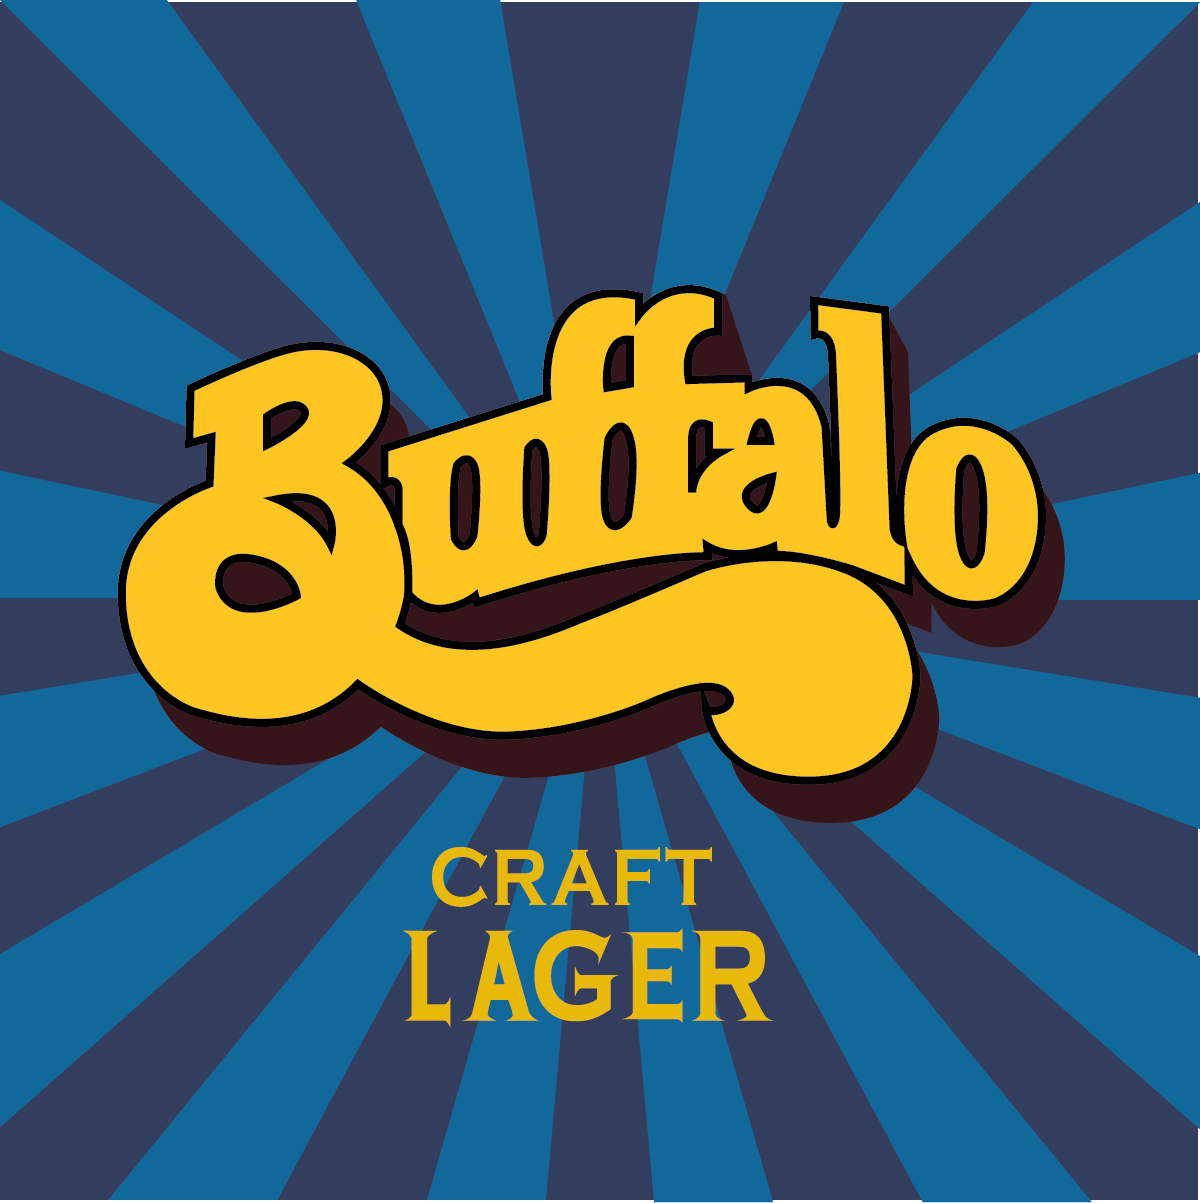 Buffalo Craft Lager